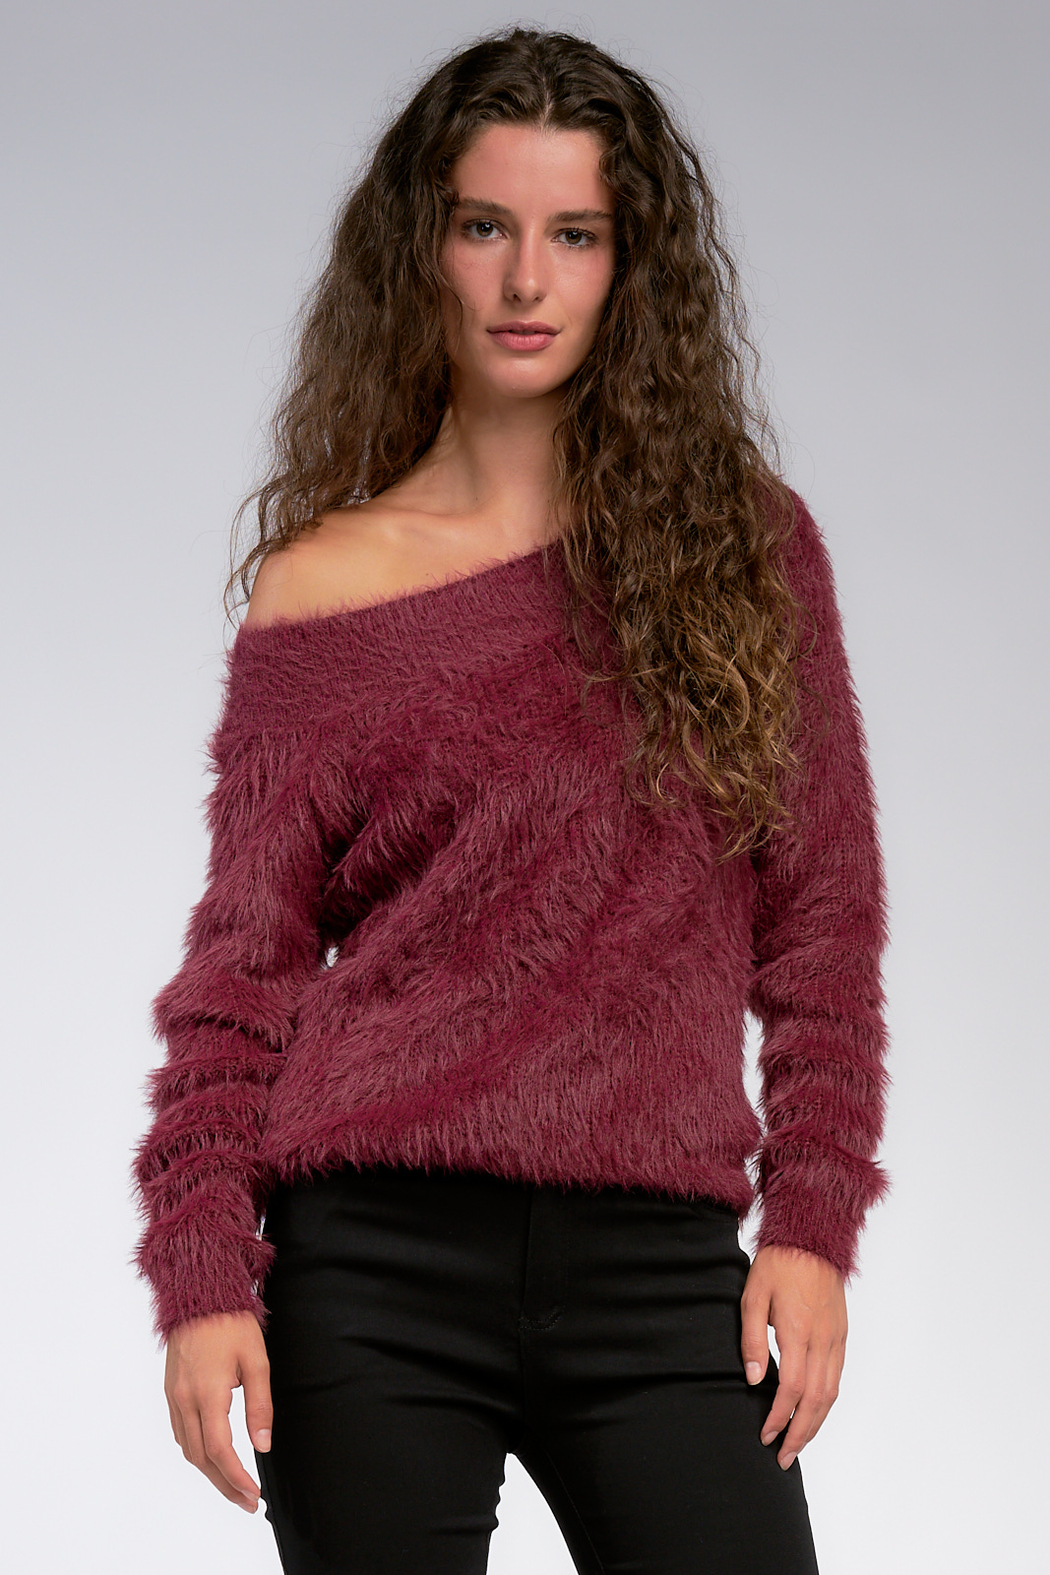 Elan Wine and Dine off the Shoulder Fuzzy Sweater - Front Full Image